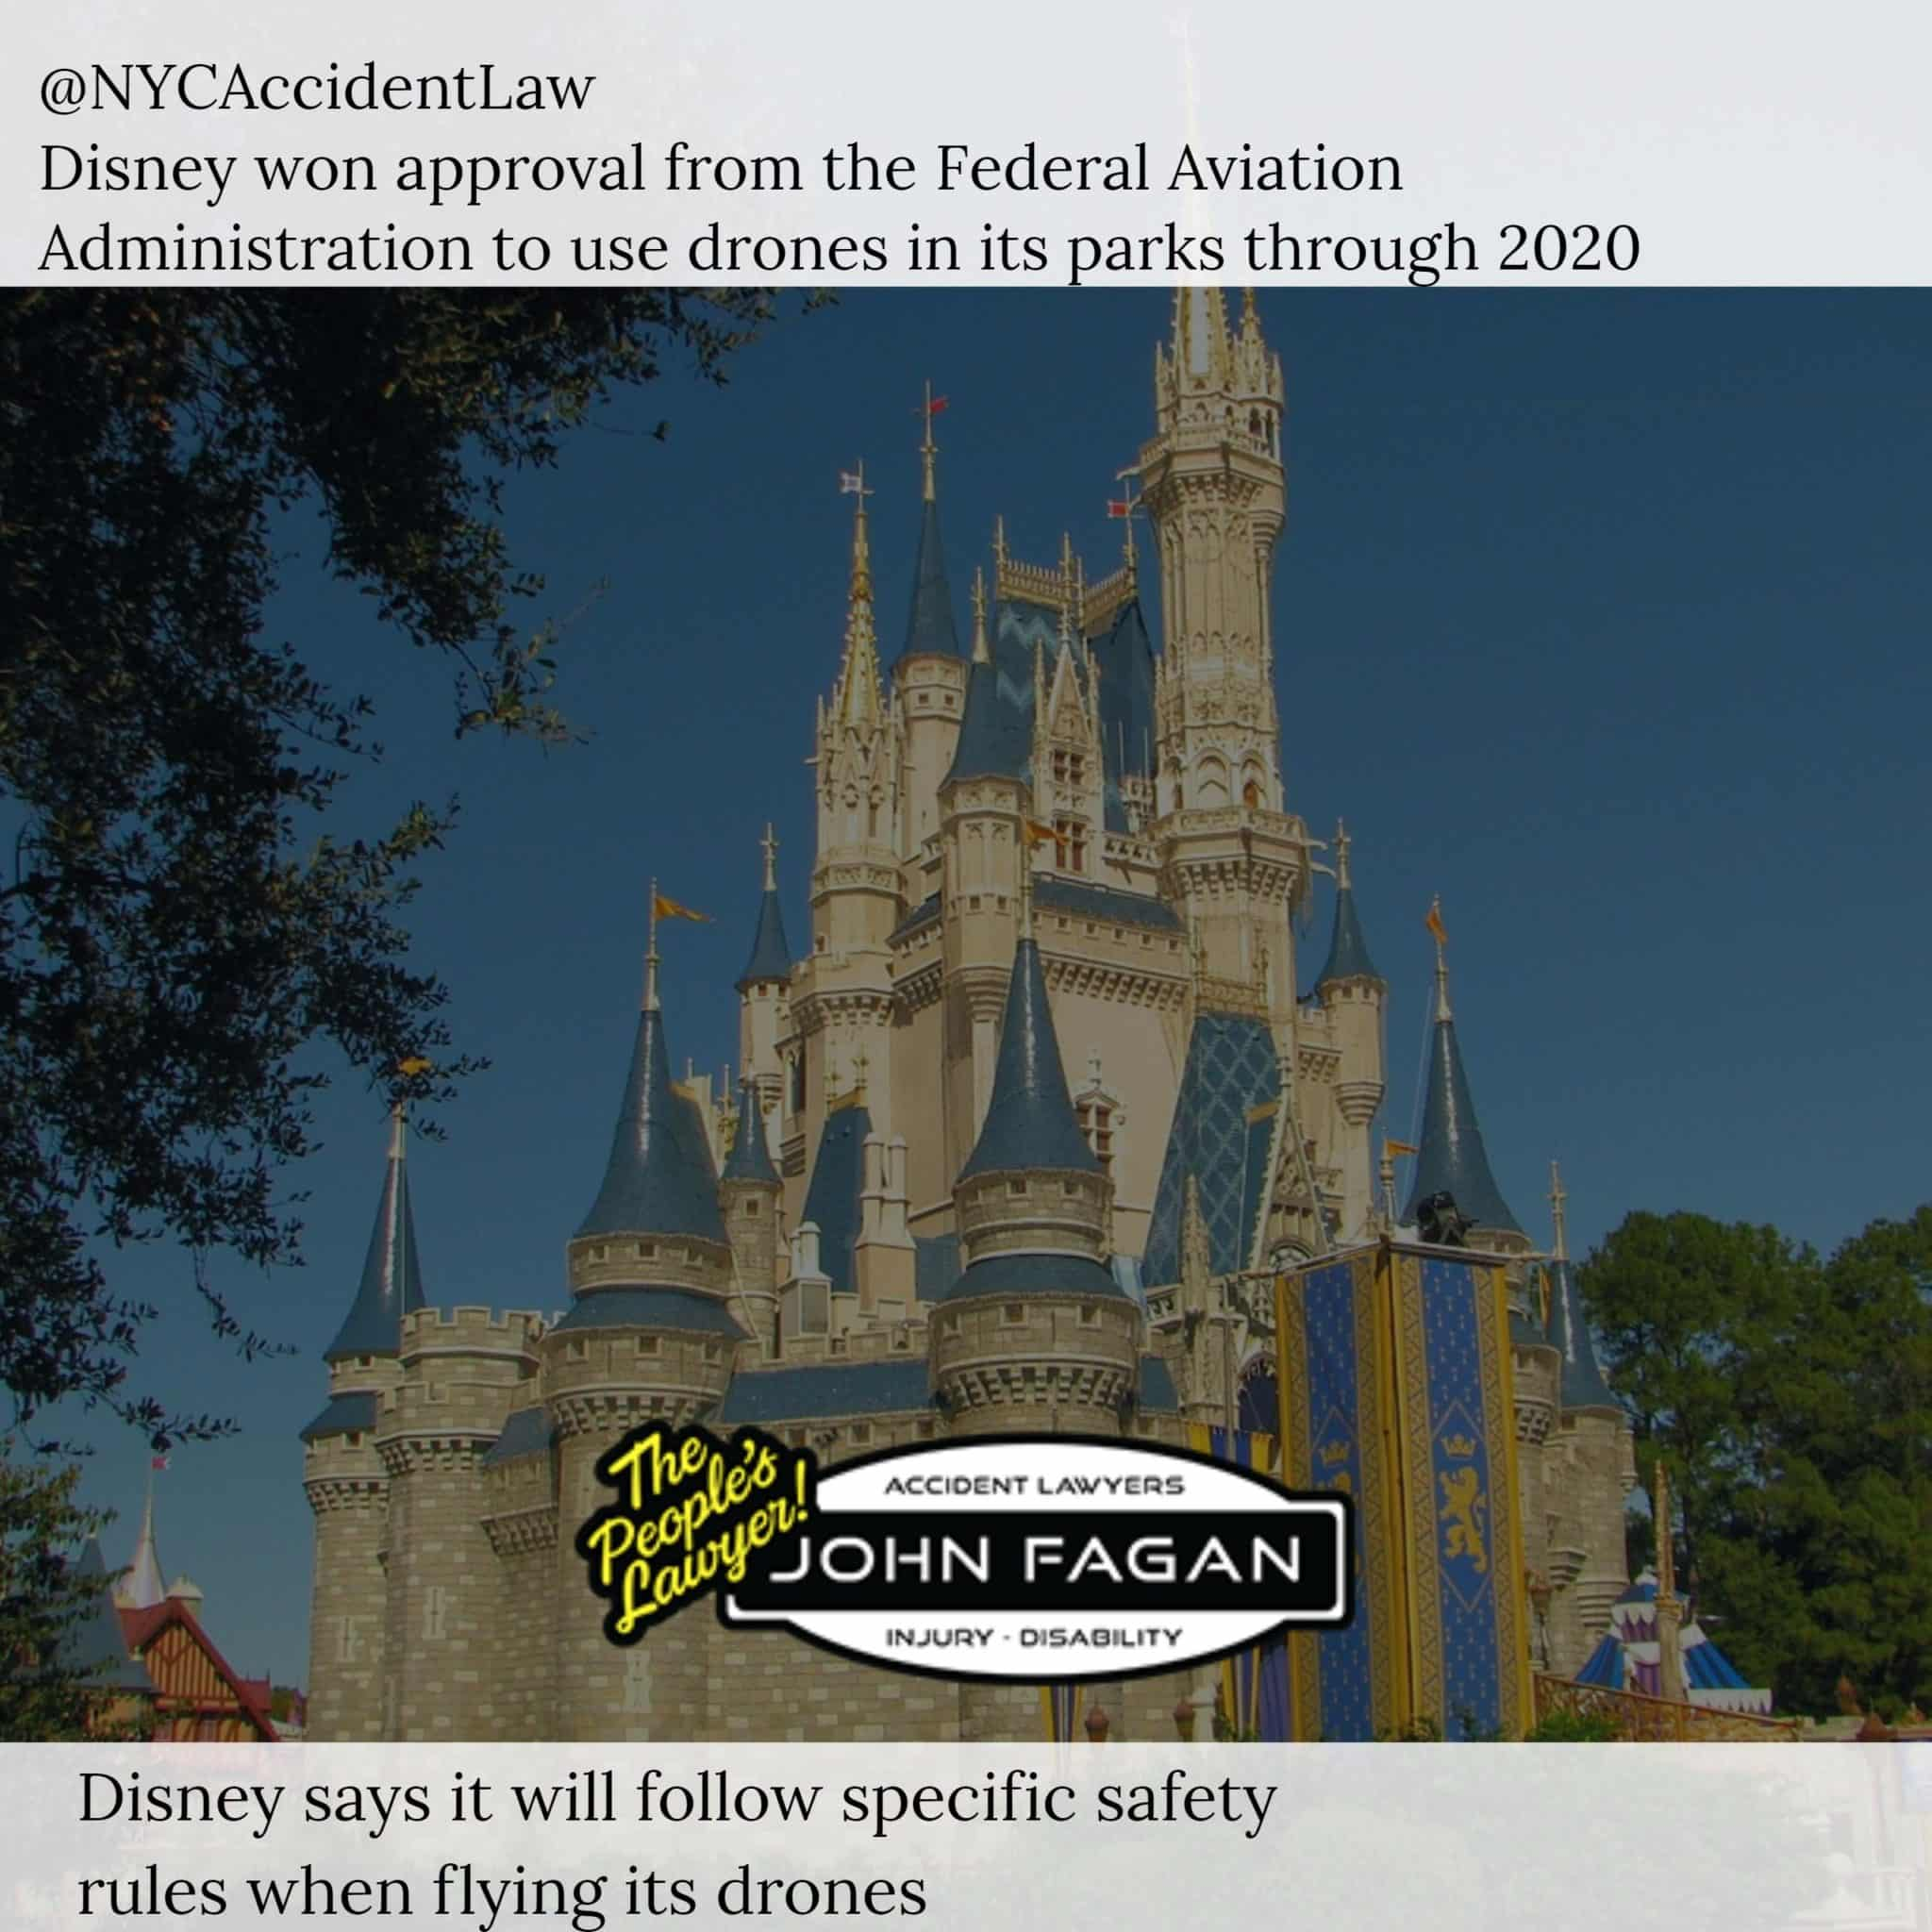 Airline Accident Lawyer – Disney Gets Federal Approval To Fly Drones